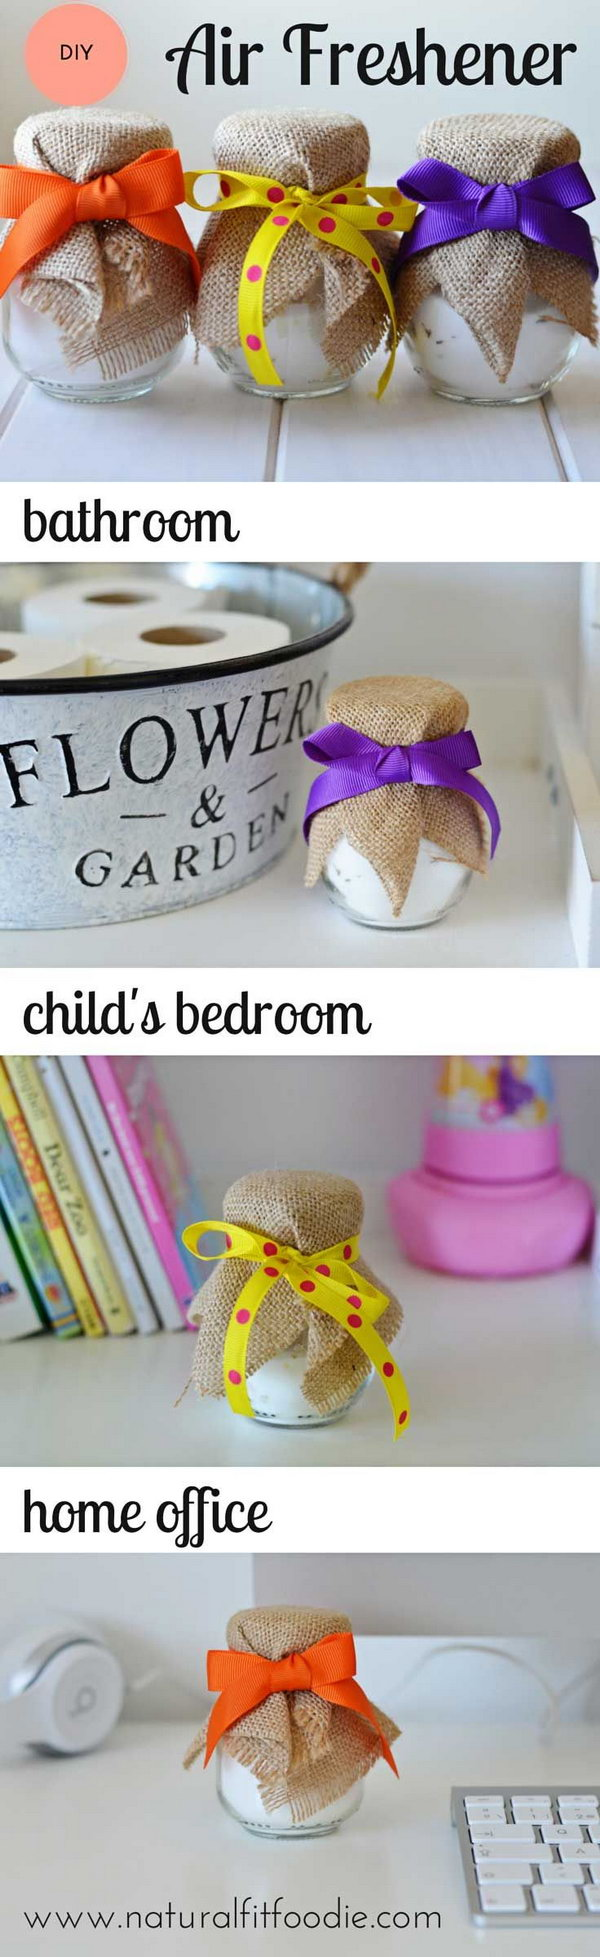 14 Easy to Make DIY Gift Ideas and Tutorials